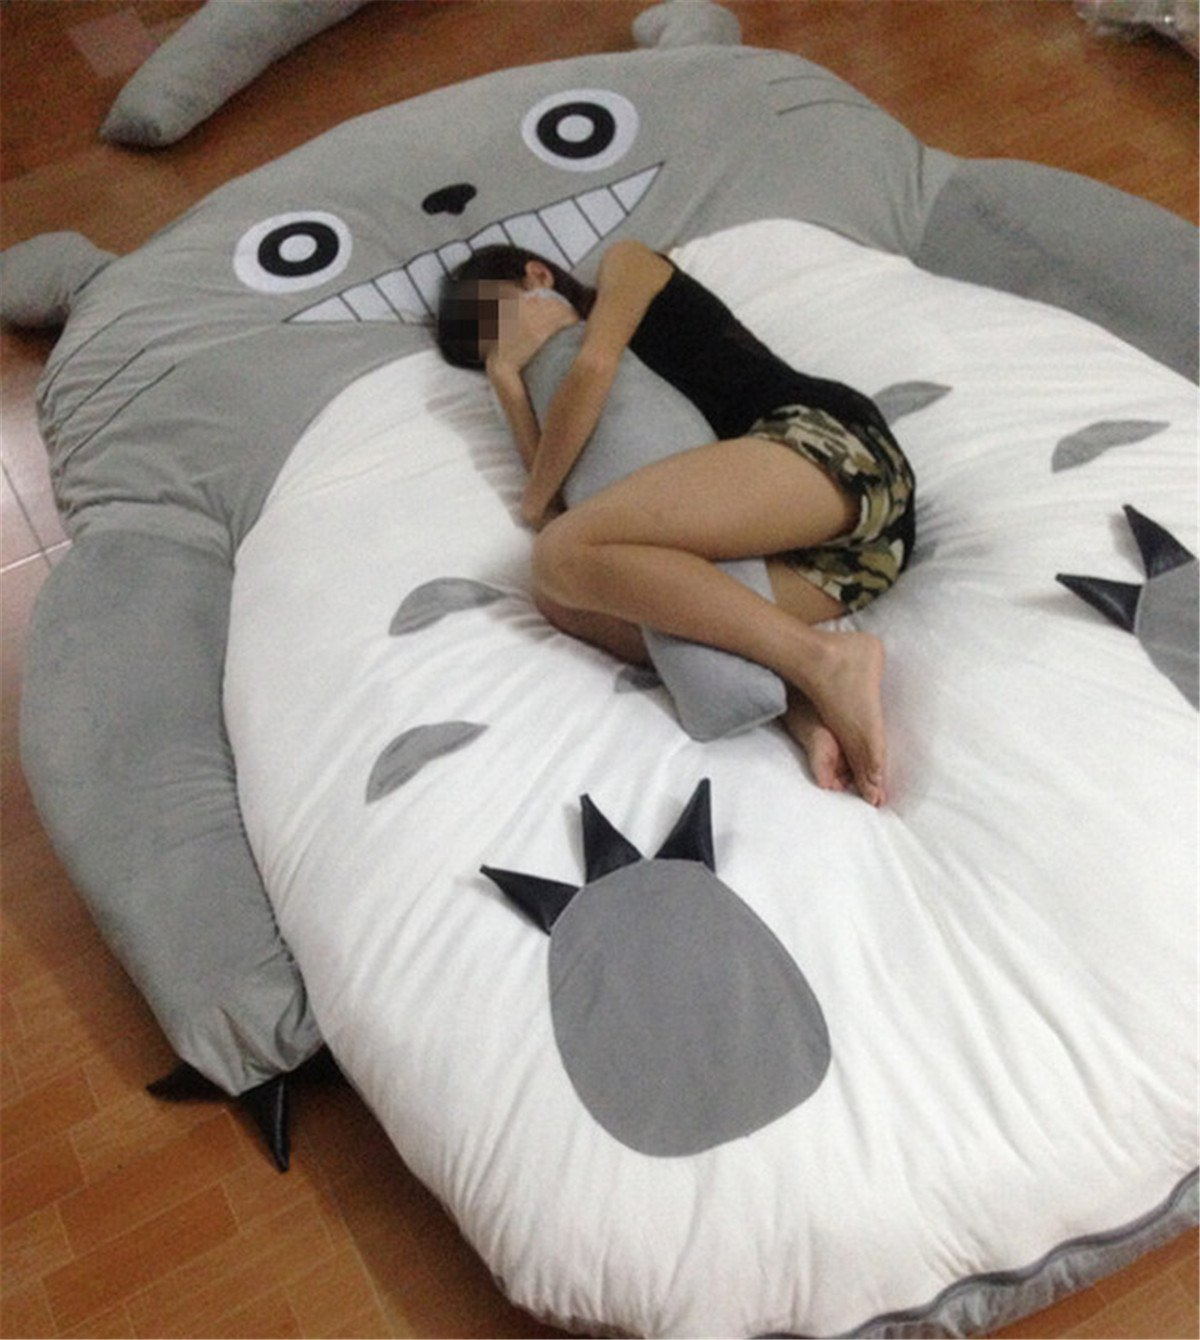 Christmas Unisex-adult Totoro Design Big Sofa Totoro Bed Mattress Sleeping Bag Mattress by VU ROUL